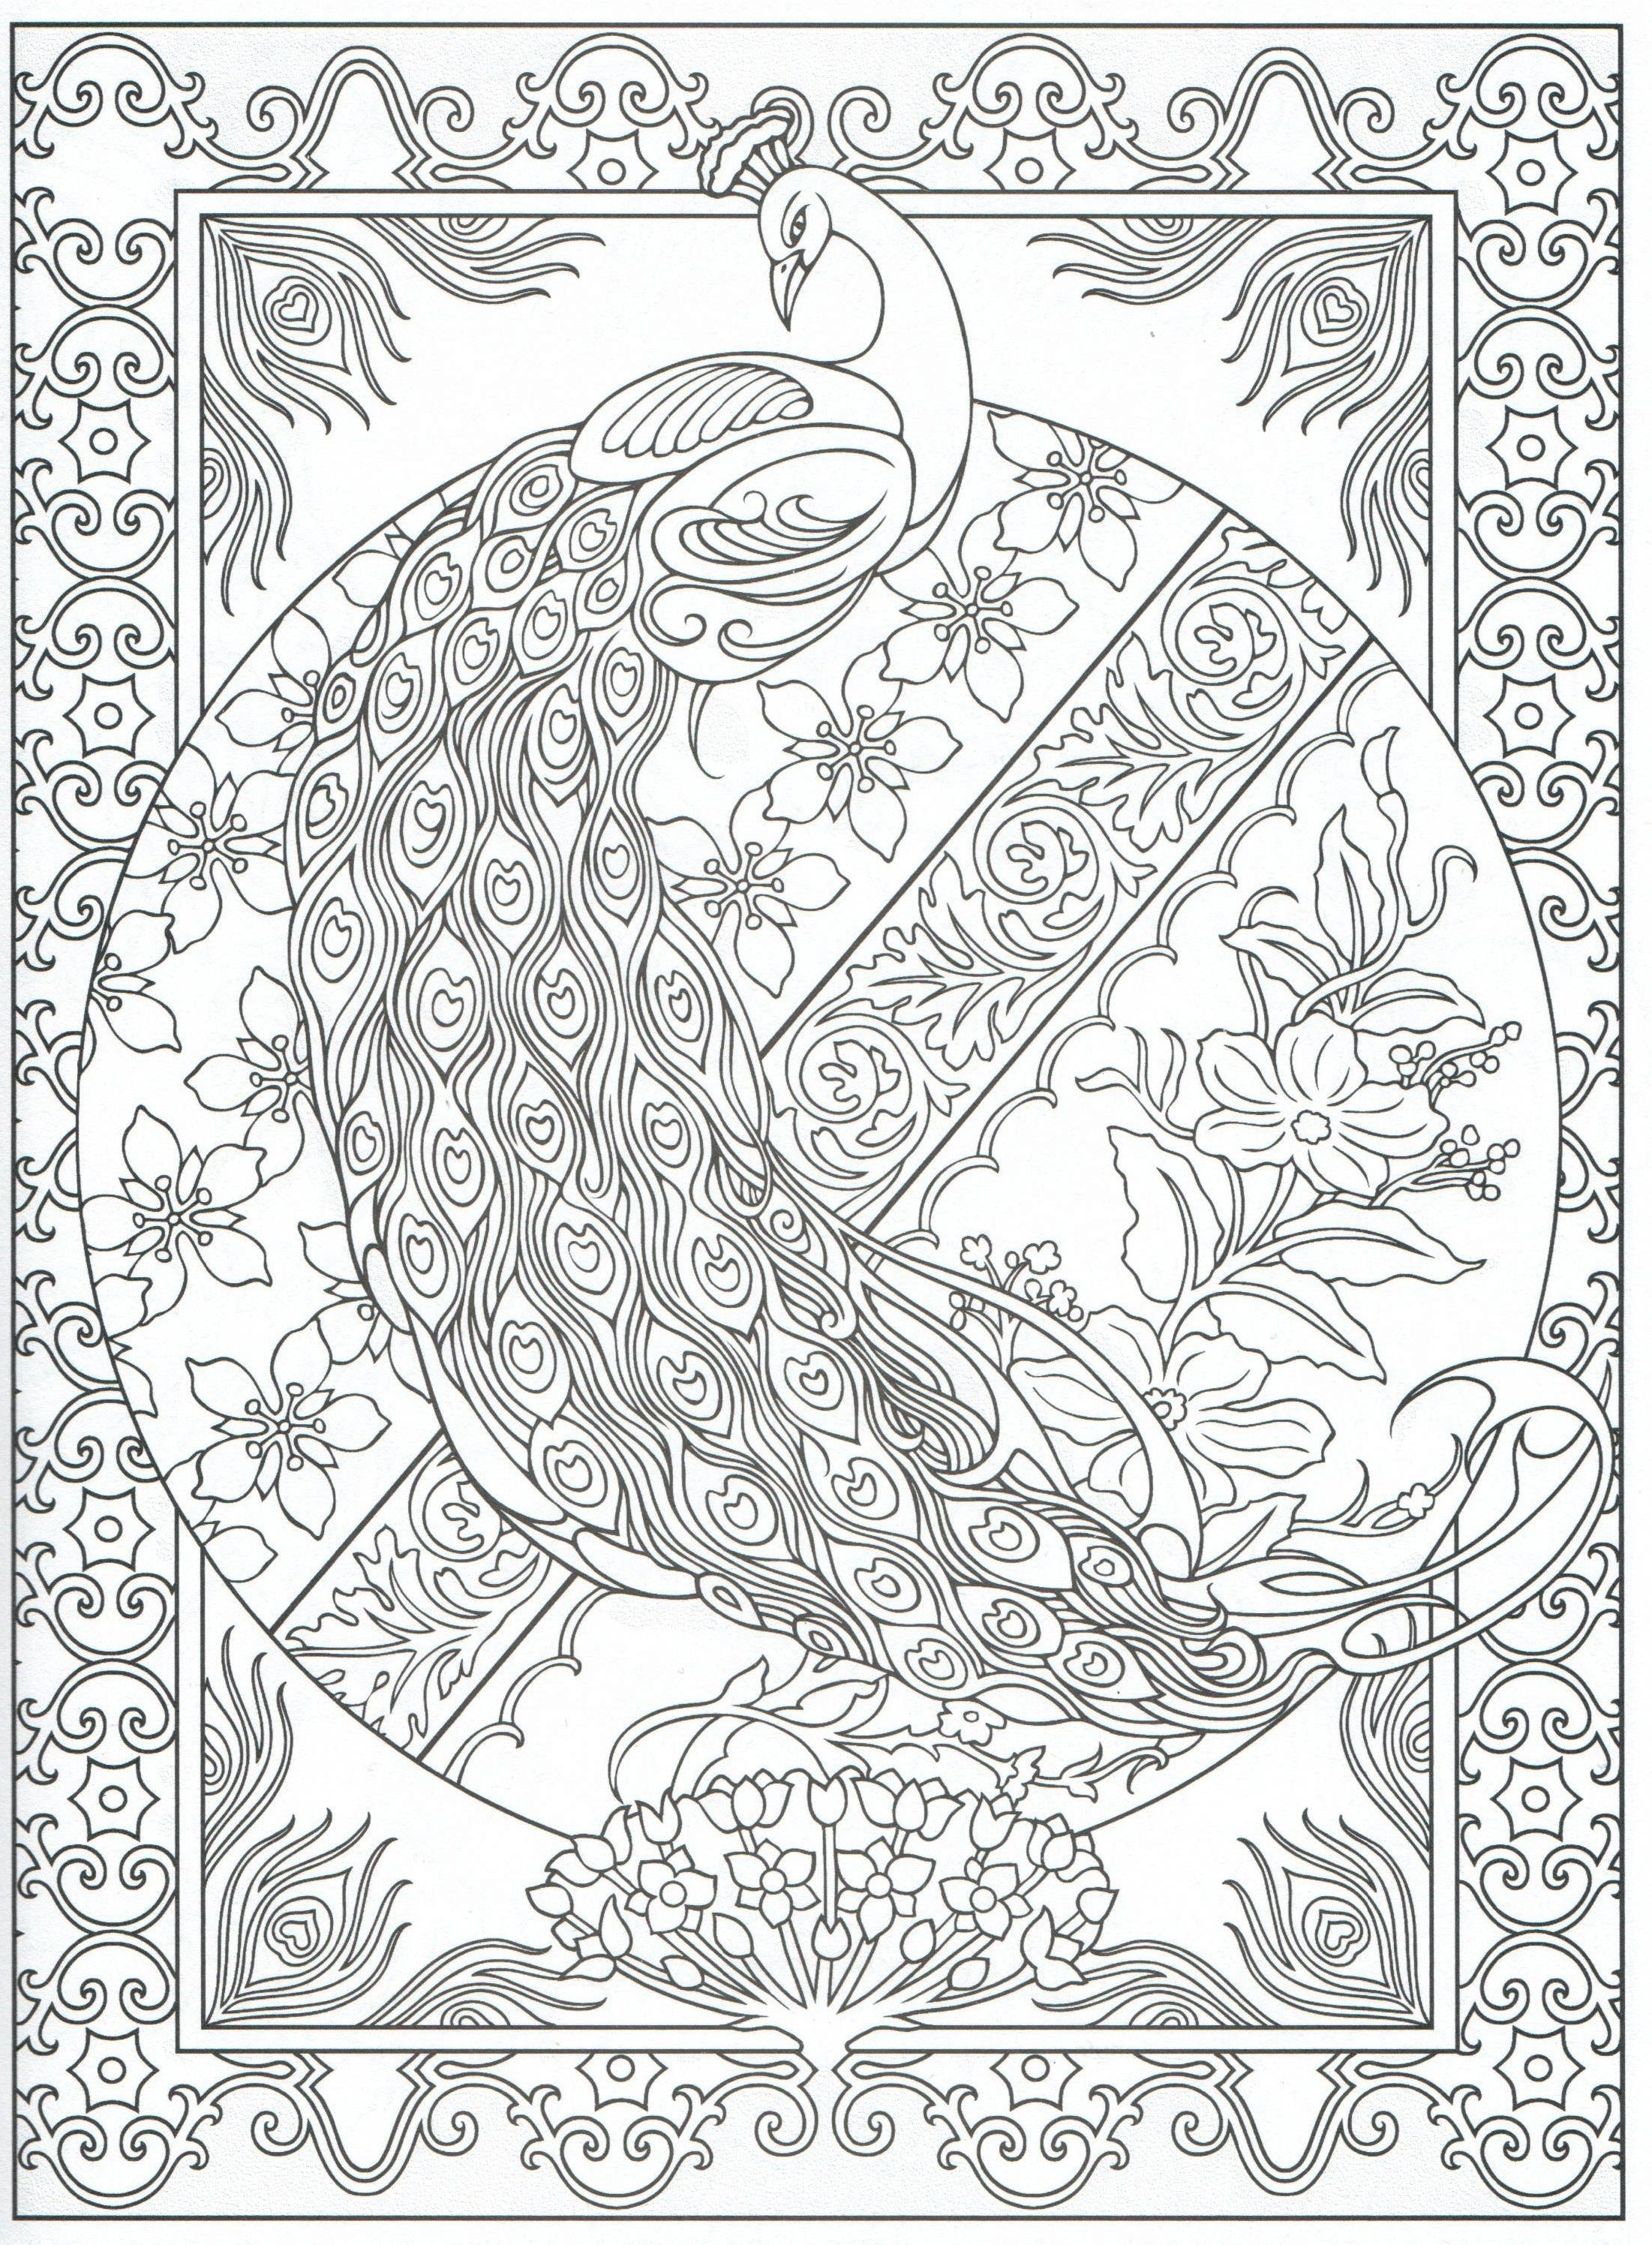 Peacock Coloring Page For Adults 2 31